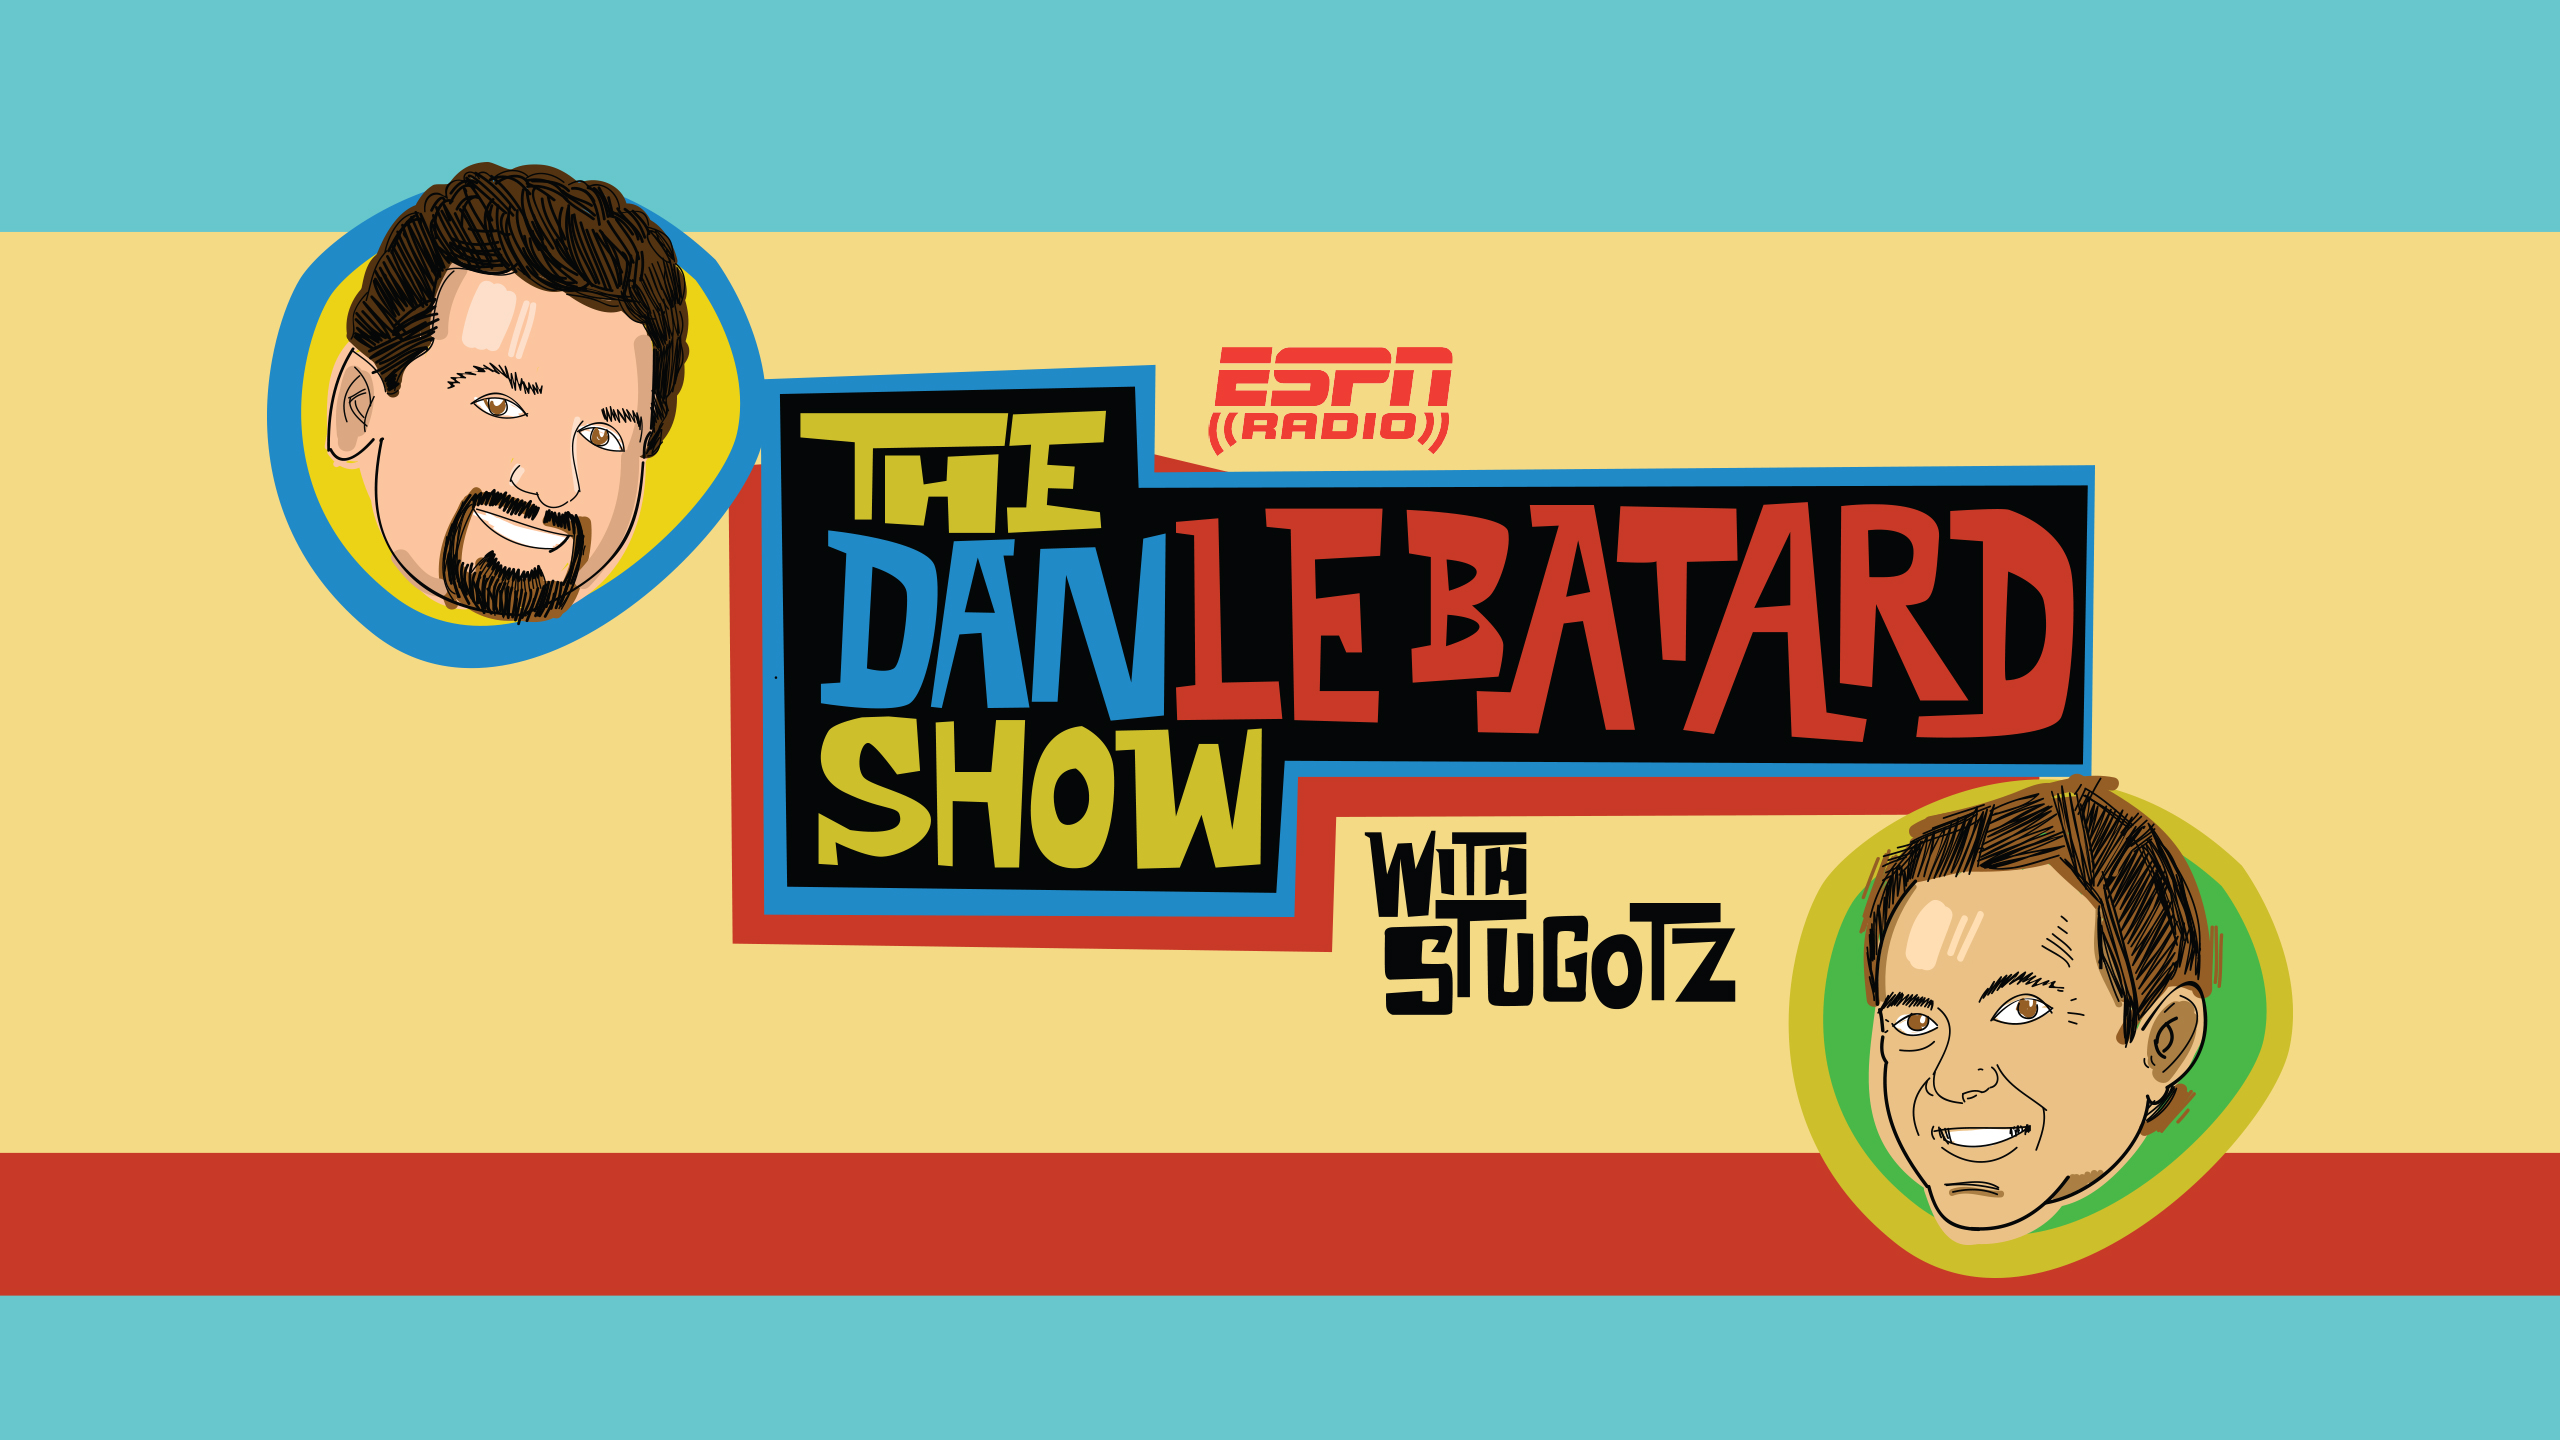 Mon, 11/19 - The Dan Le Batard Show with Stugotz Presented by Progressive